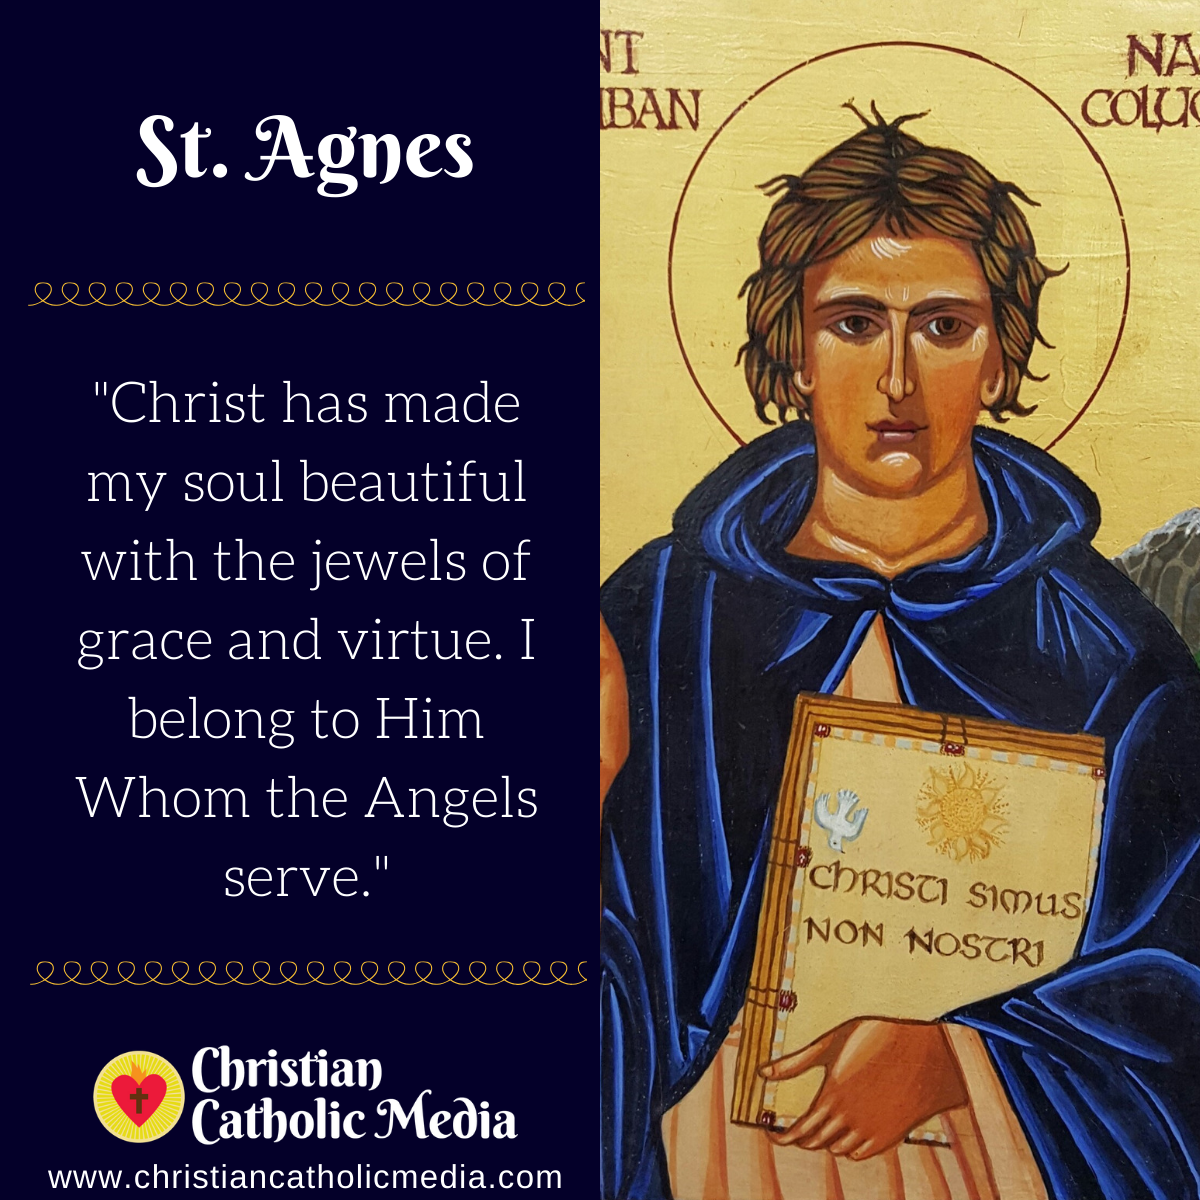 St. Agnes - Tuesday January 21, 2020